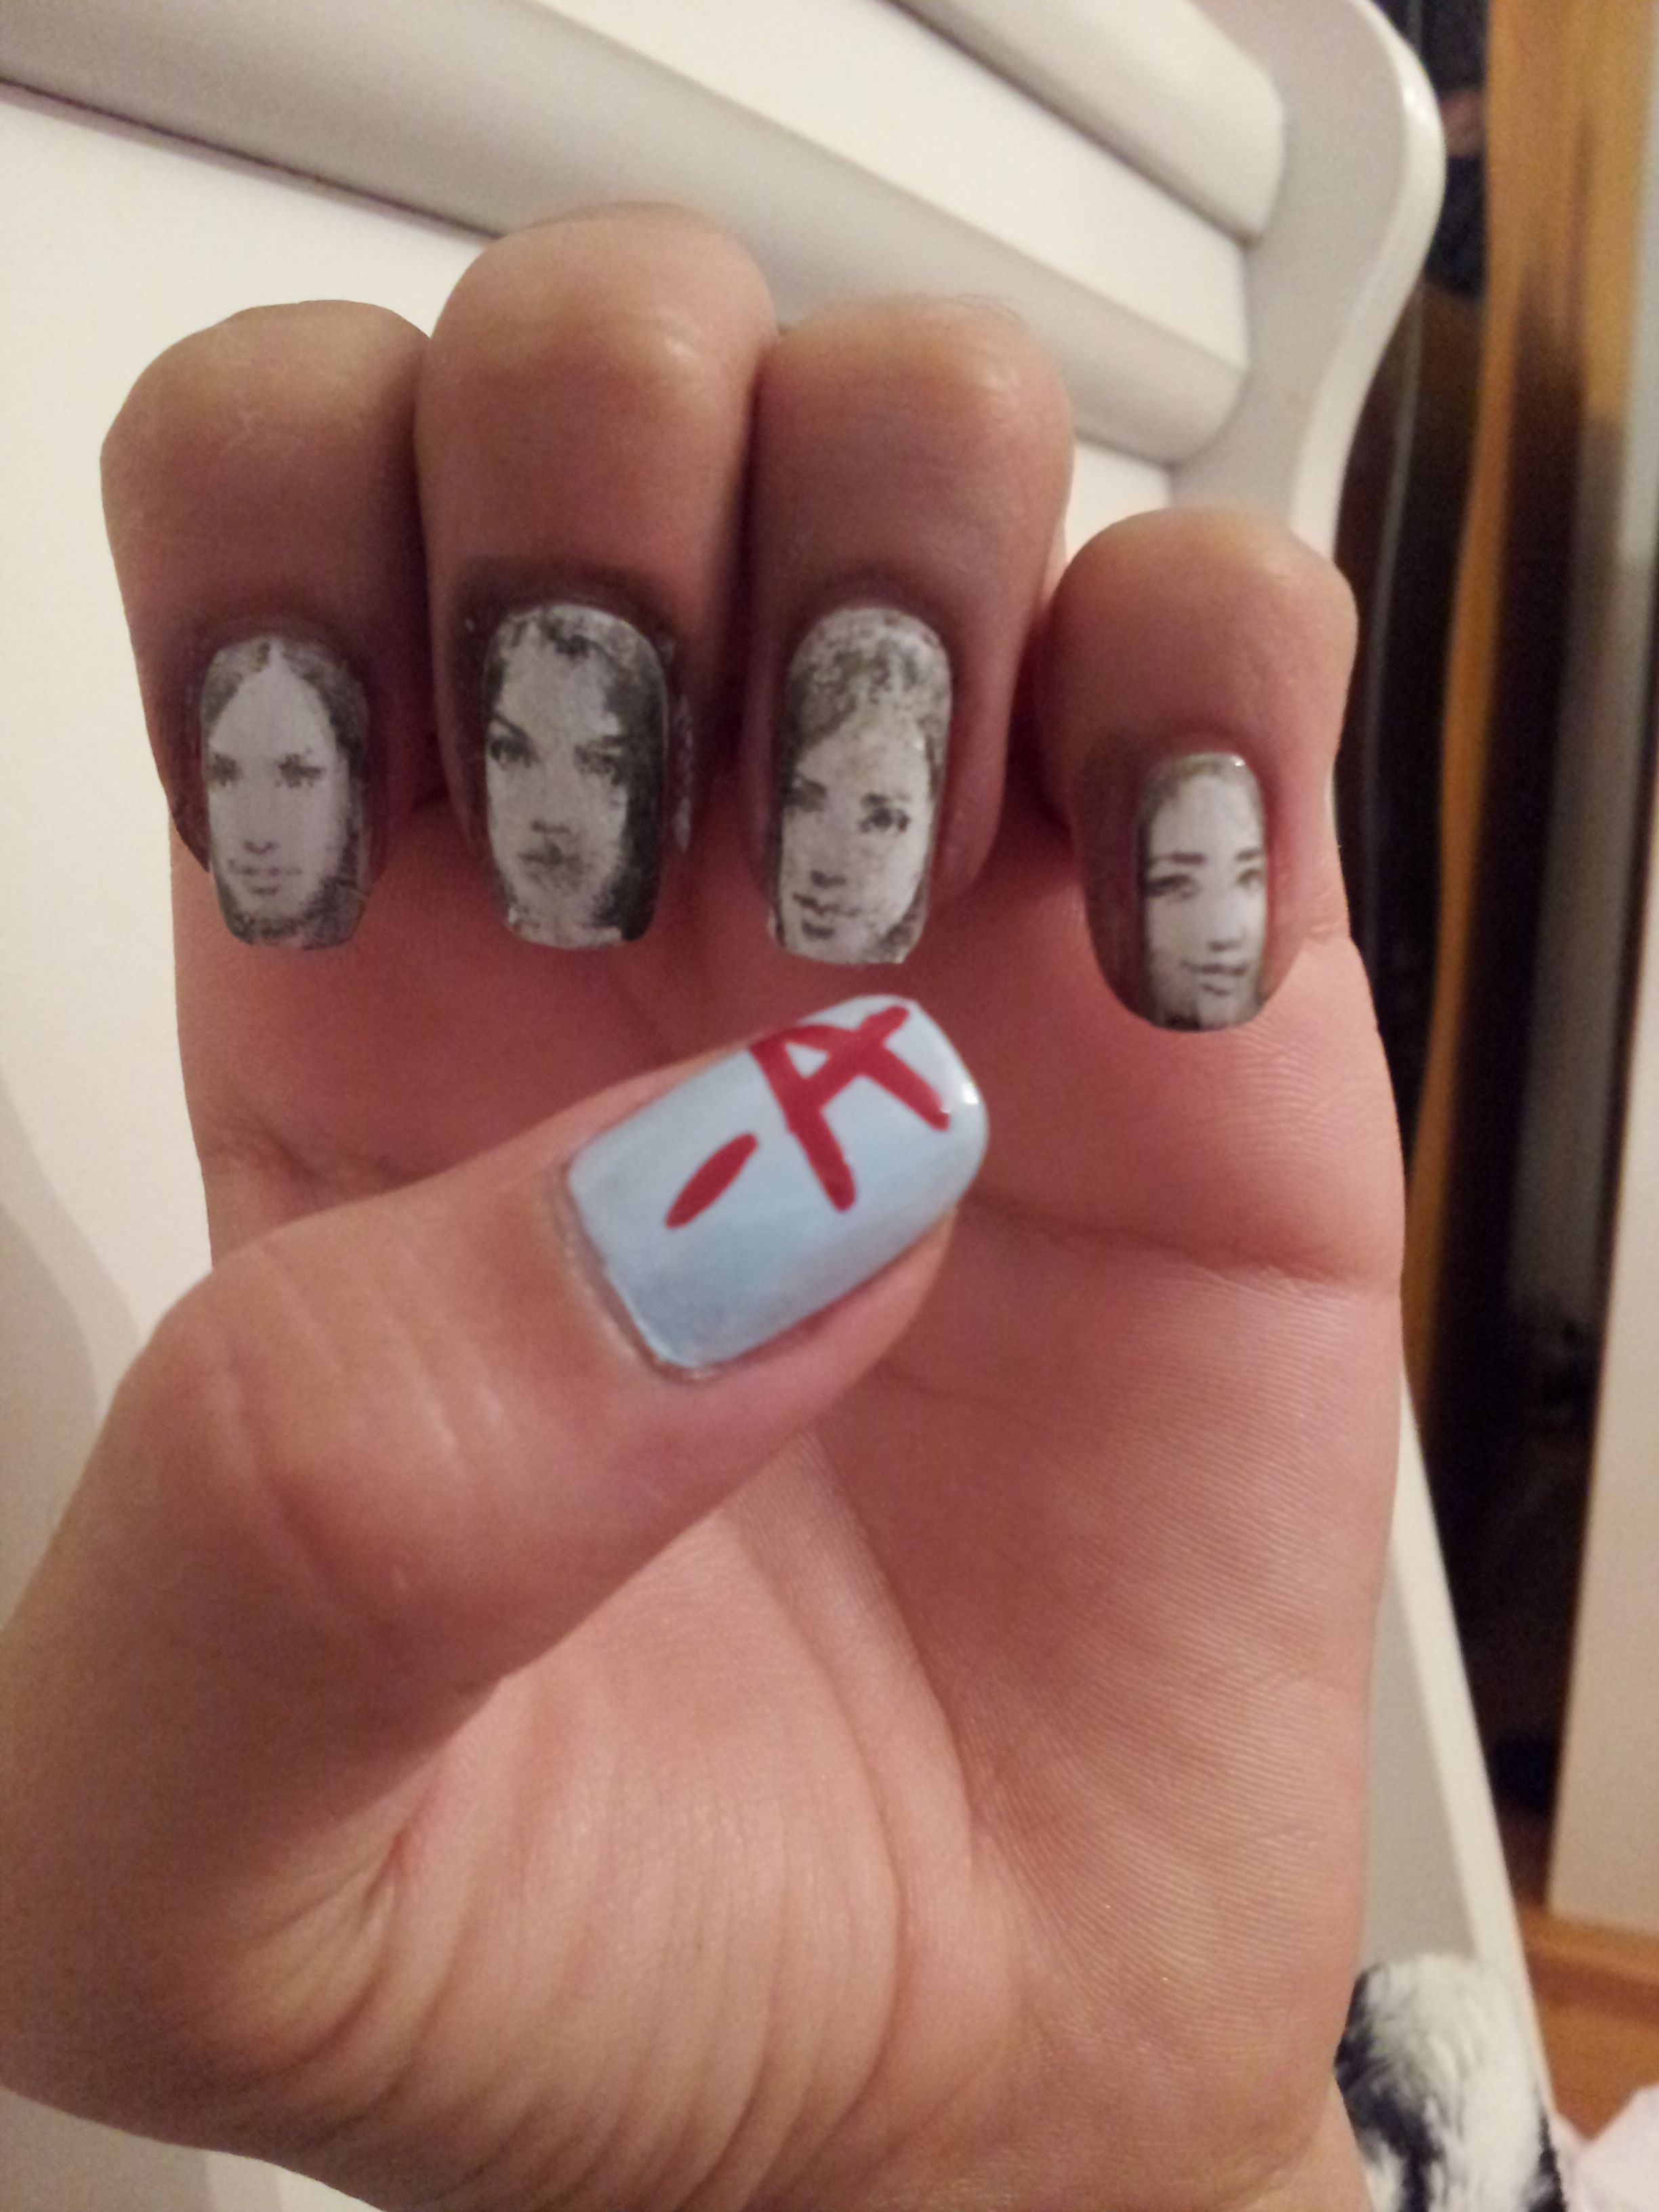 Pretty Little Liars Nails For More Nail Art Like This Go Follow